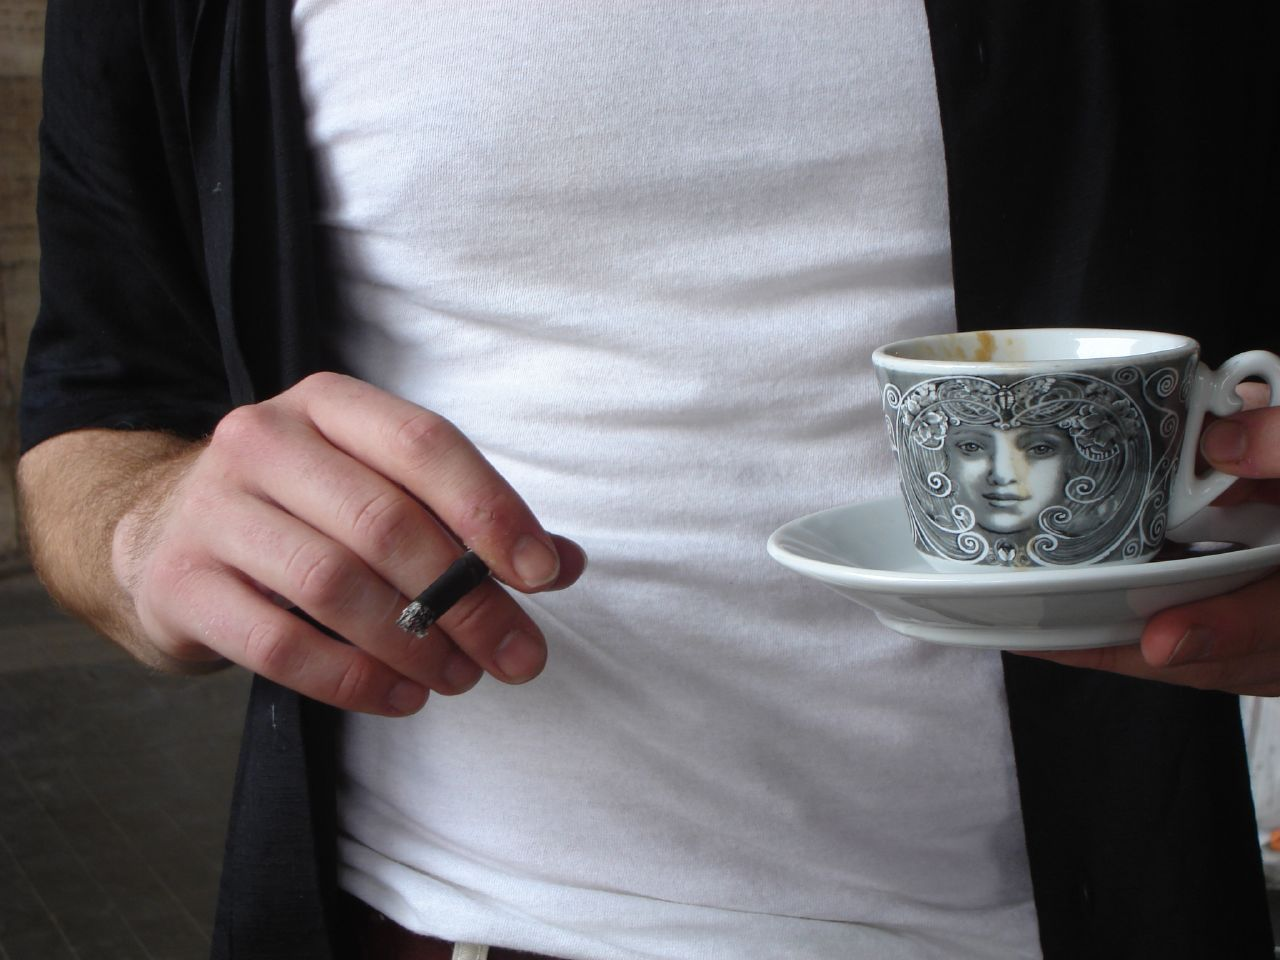 I want this tea cup!